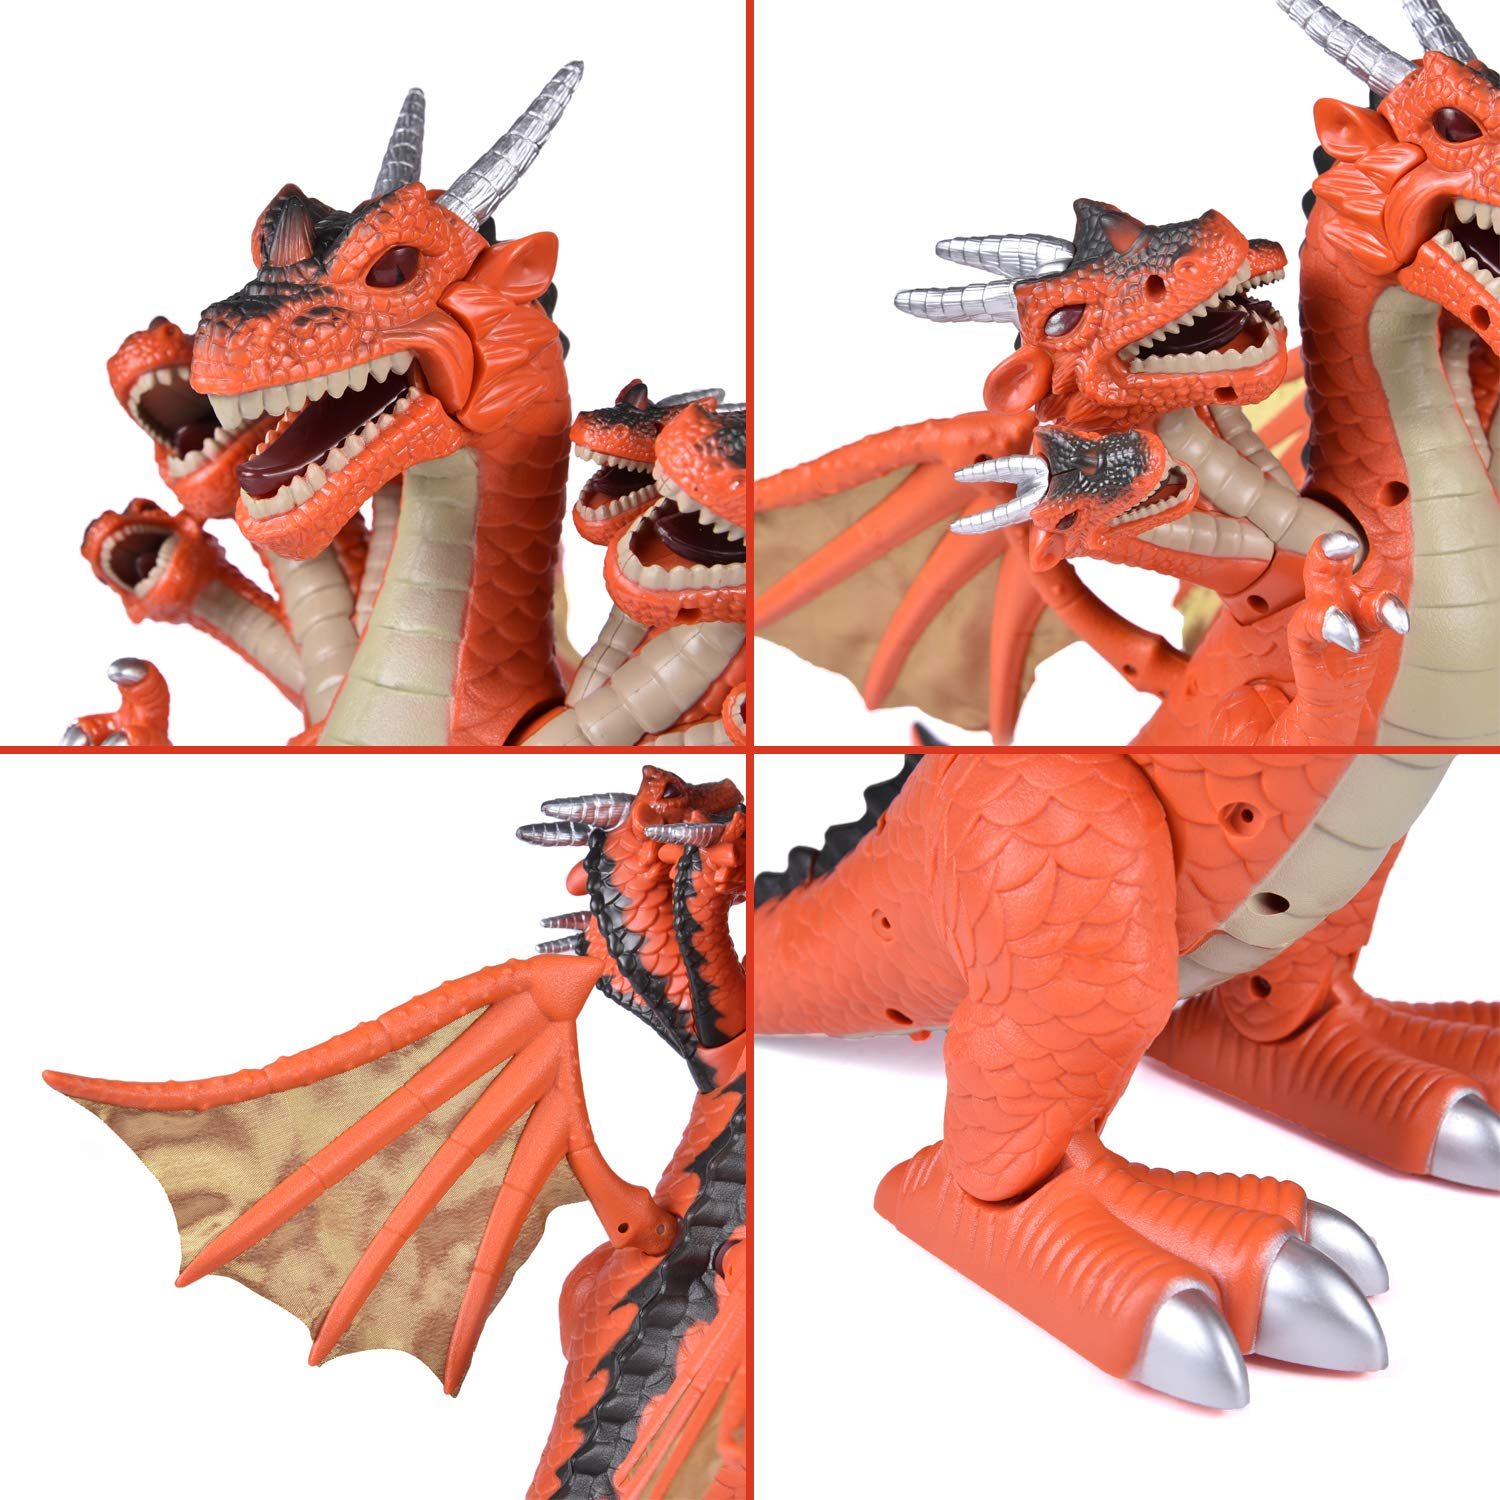 Dragon Toys for Boys, Seven Heads Walking Dragon 11.8''(L)×11.4''(H) Large Size with Lights and Sounds by FUN LITTLE TOYS (Image #5)